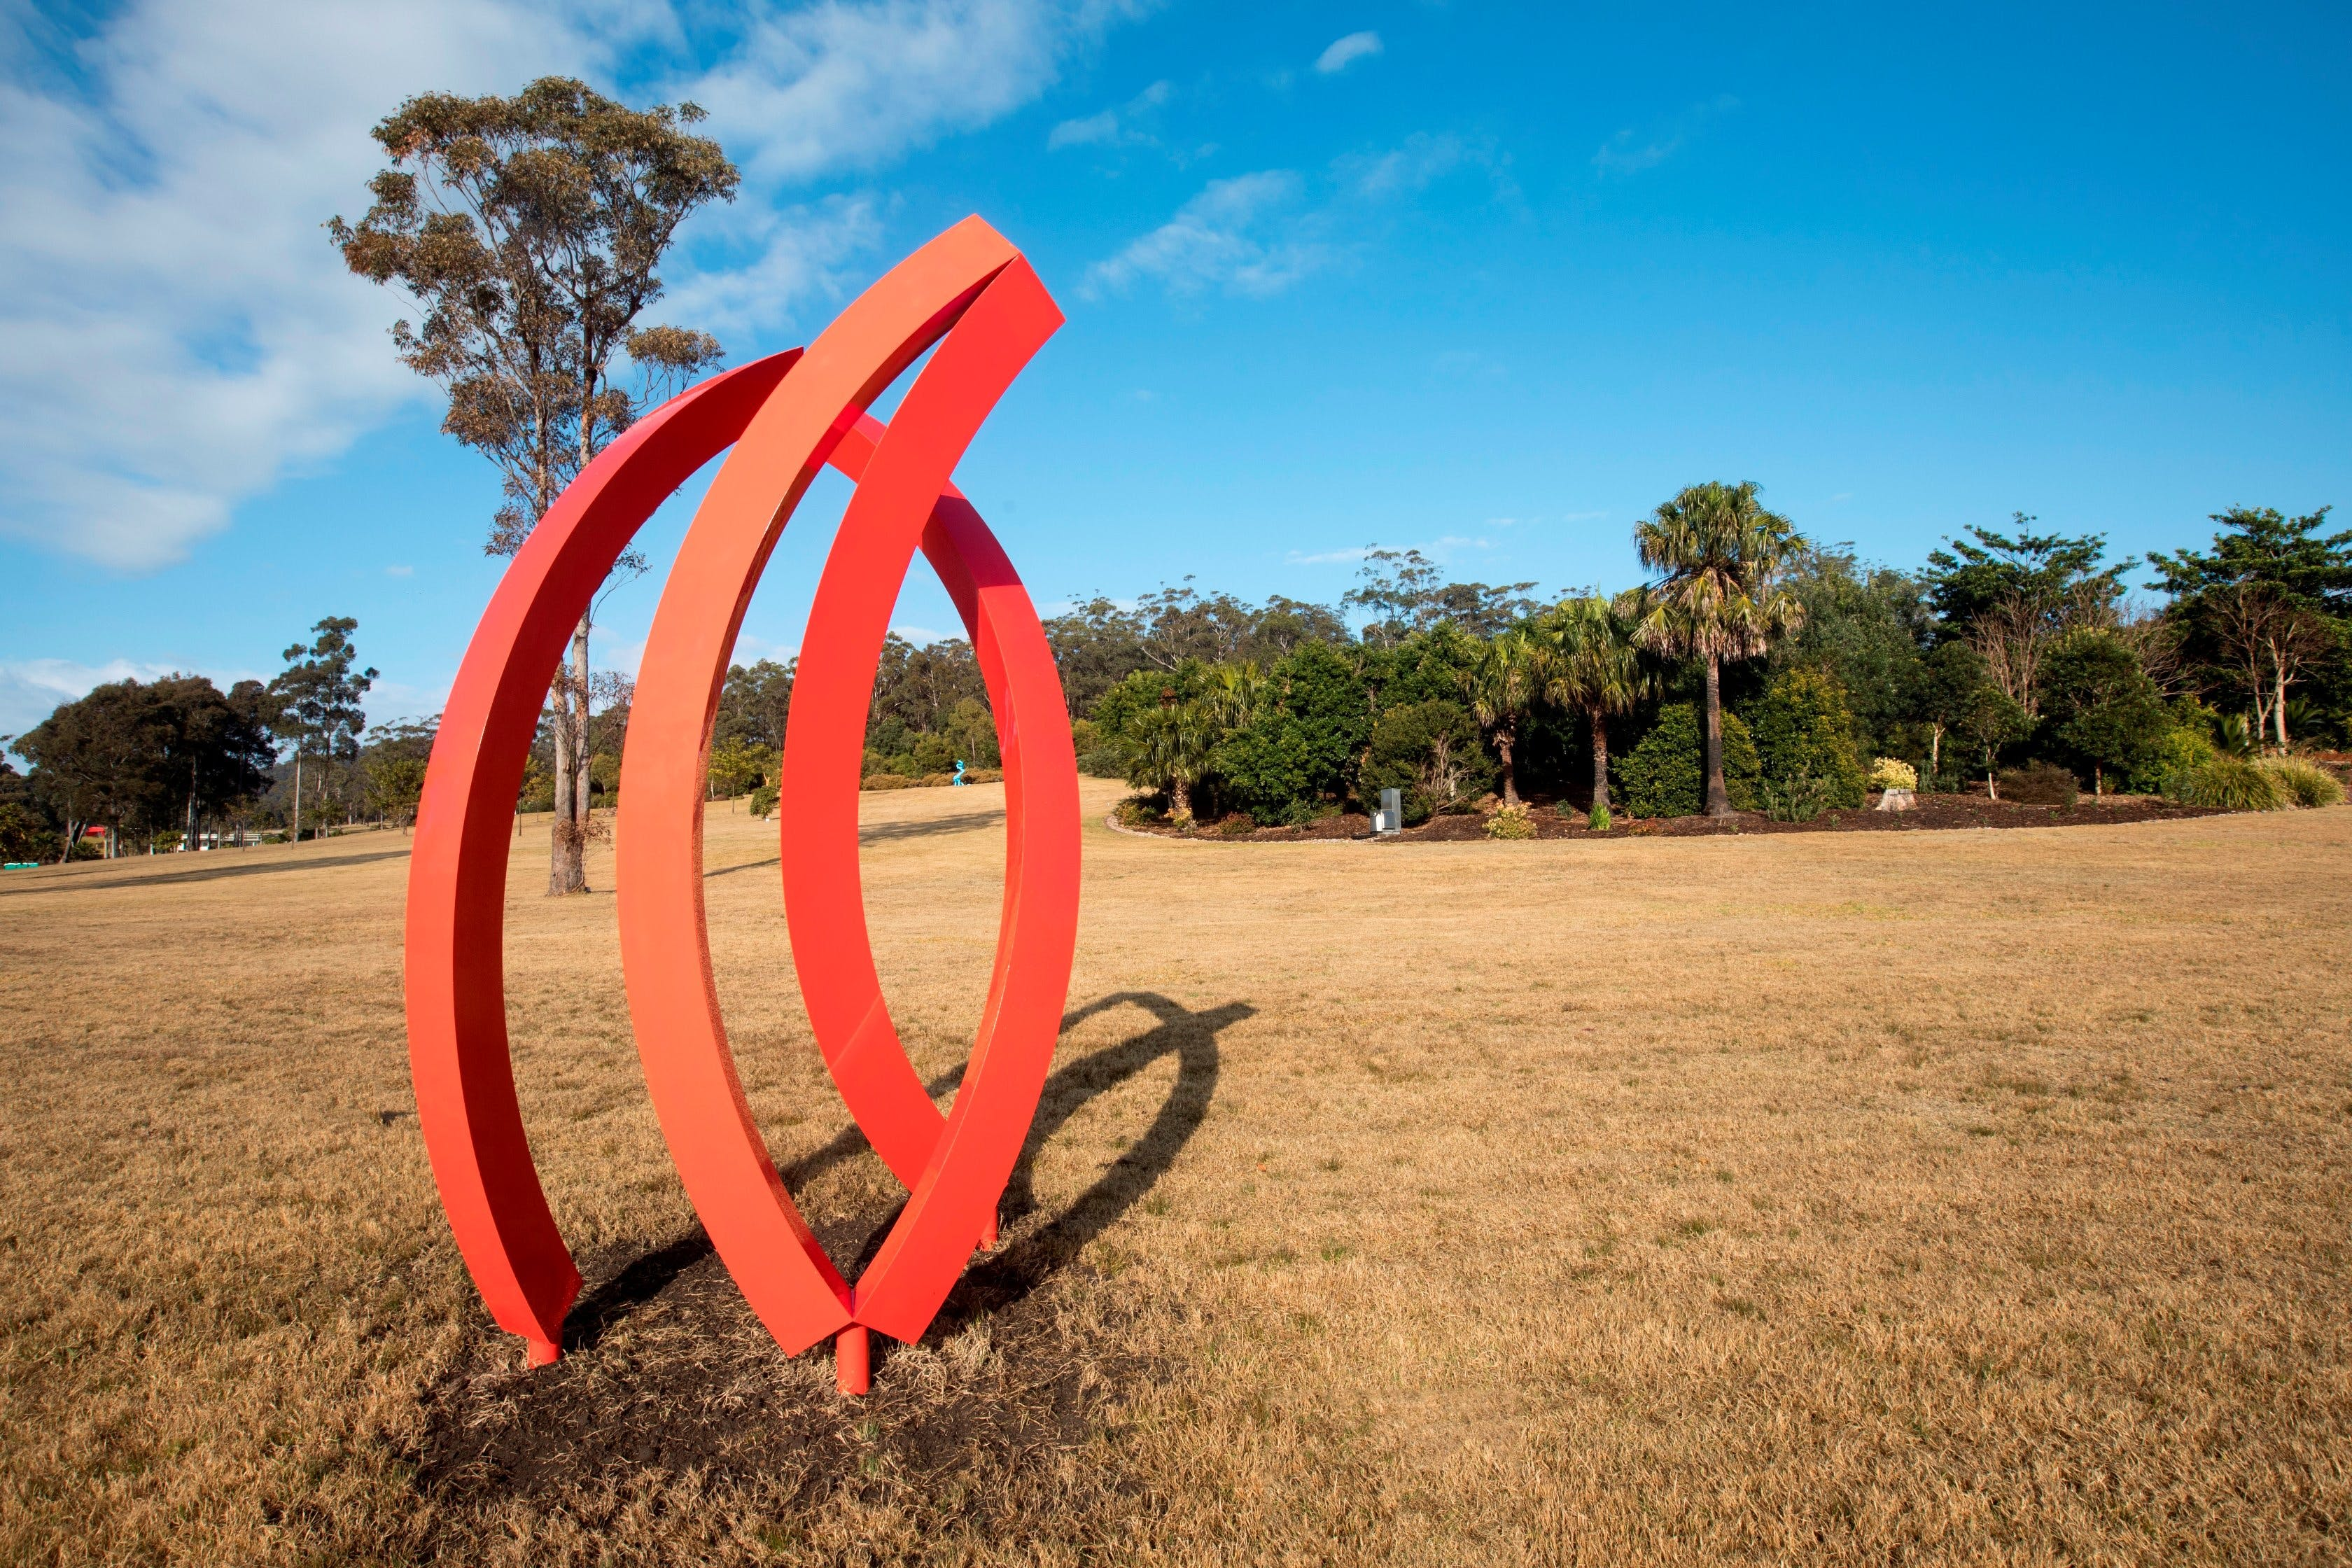 Sculpture for Clyde - Tourism Canberra